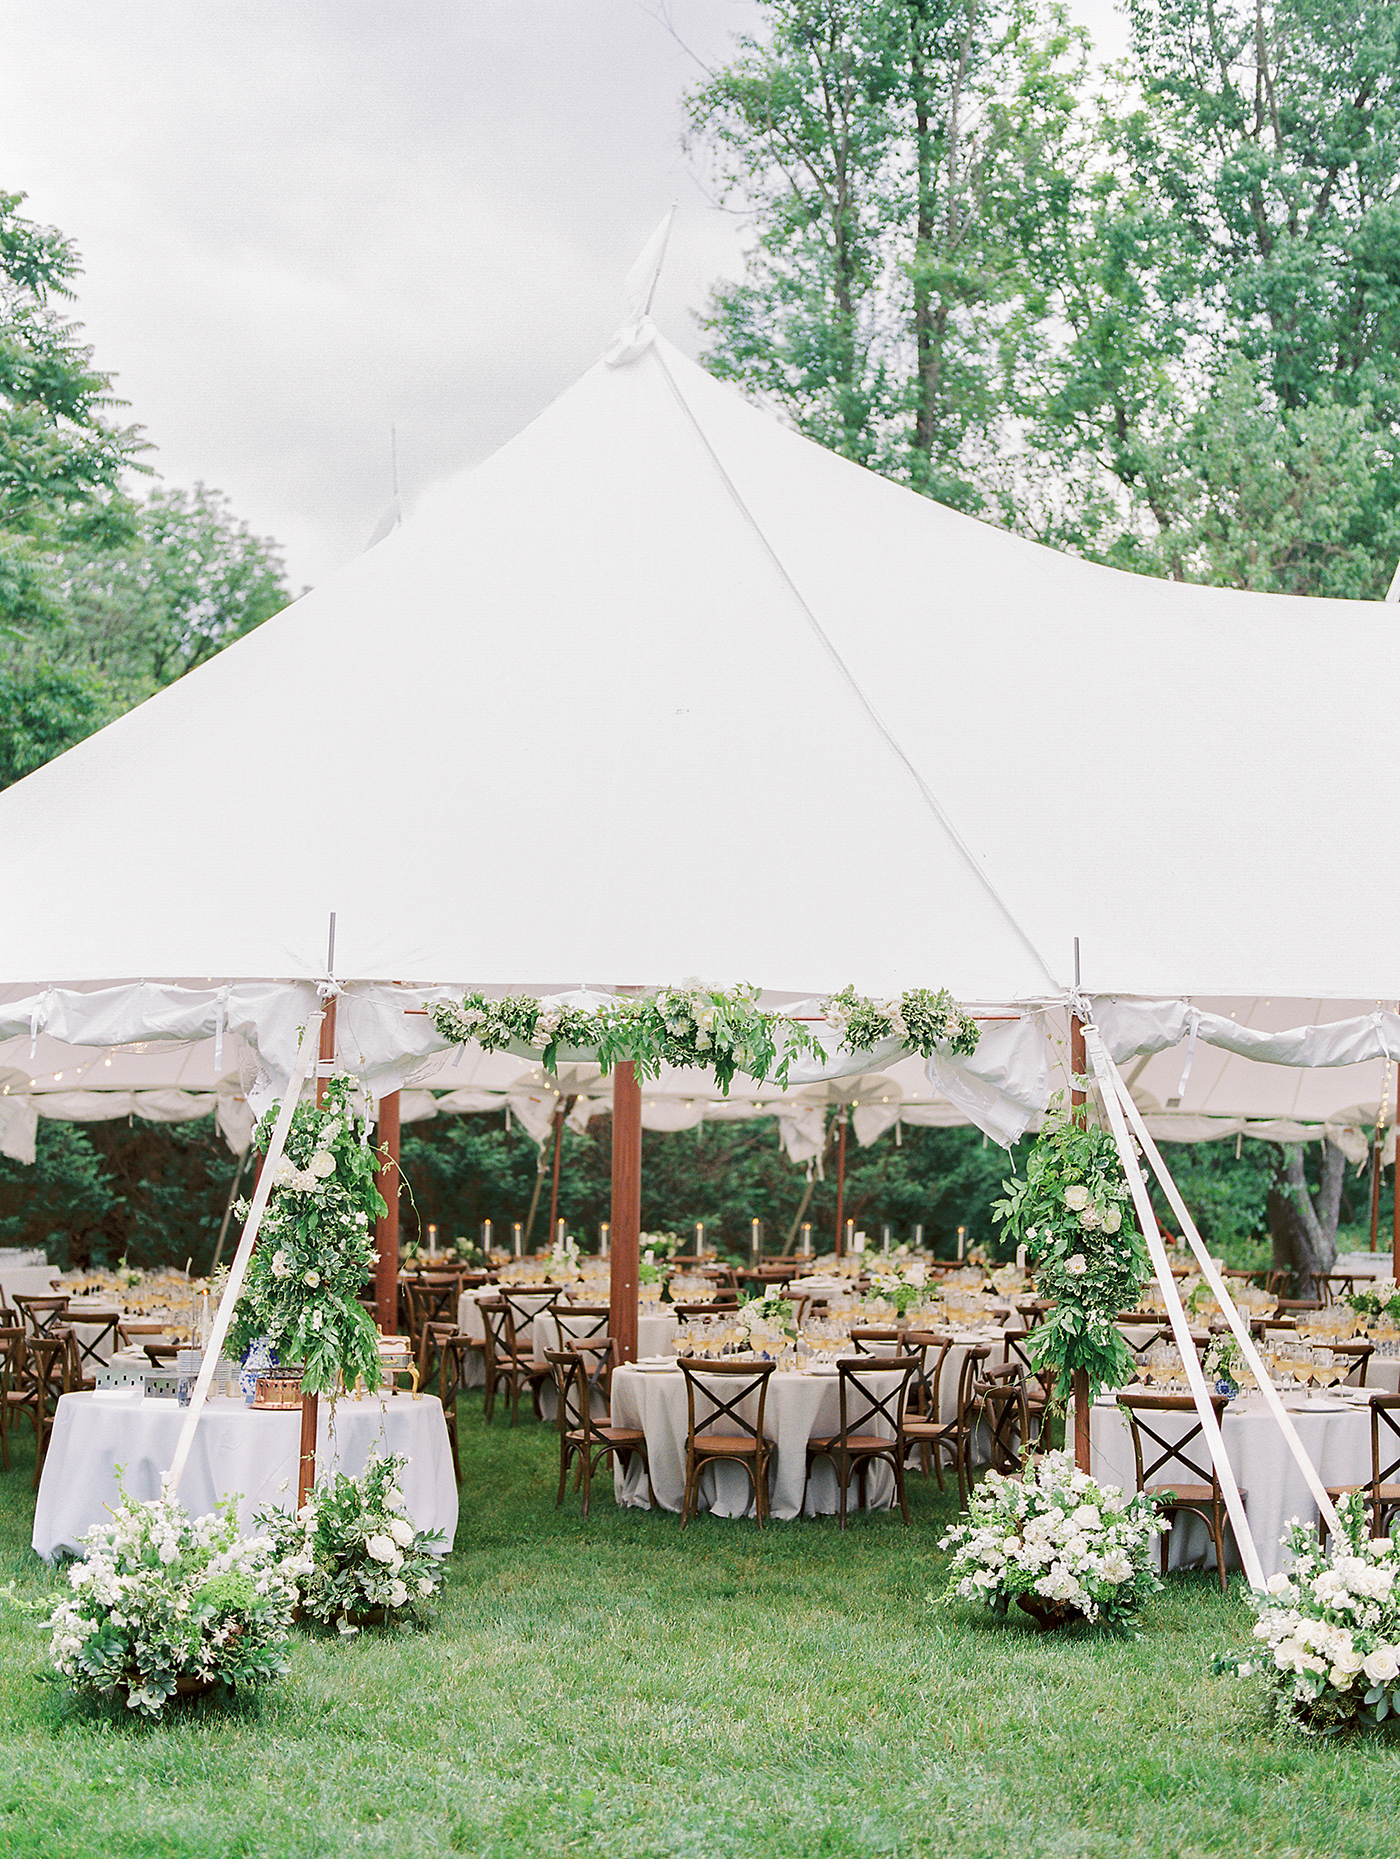 A Tented Party